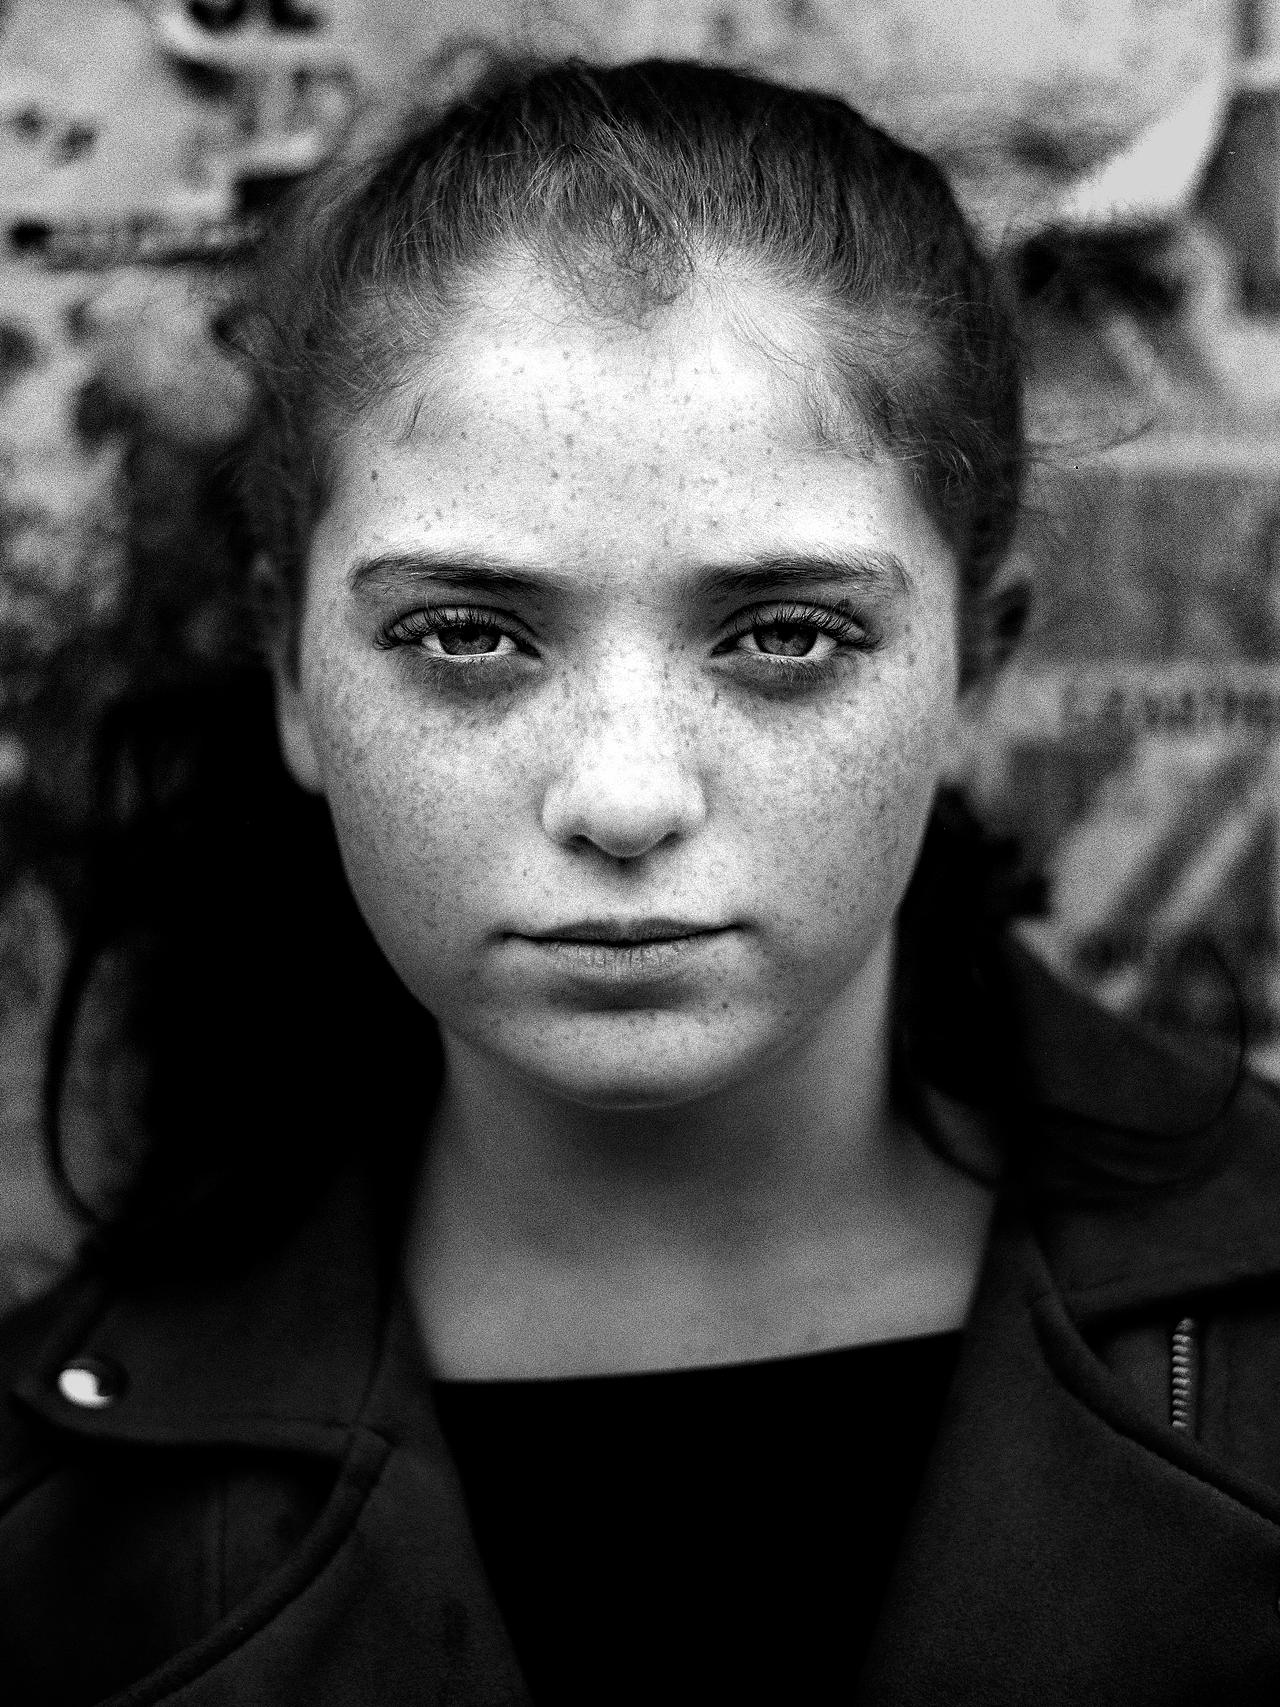 Toby Binder - Wee Muckers – Youth of Belfast - Felix Schoeller Photoaward